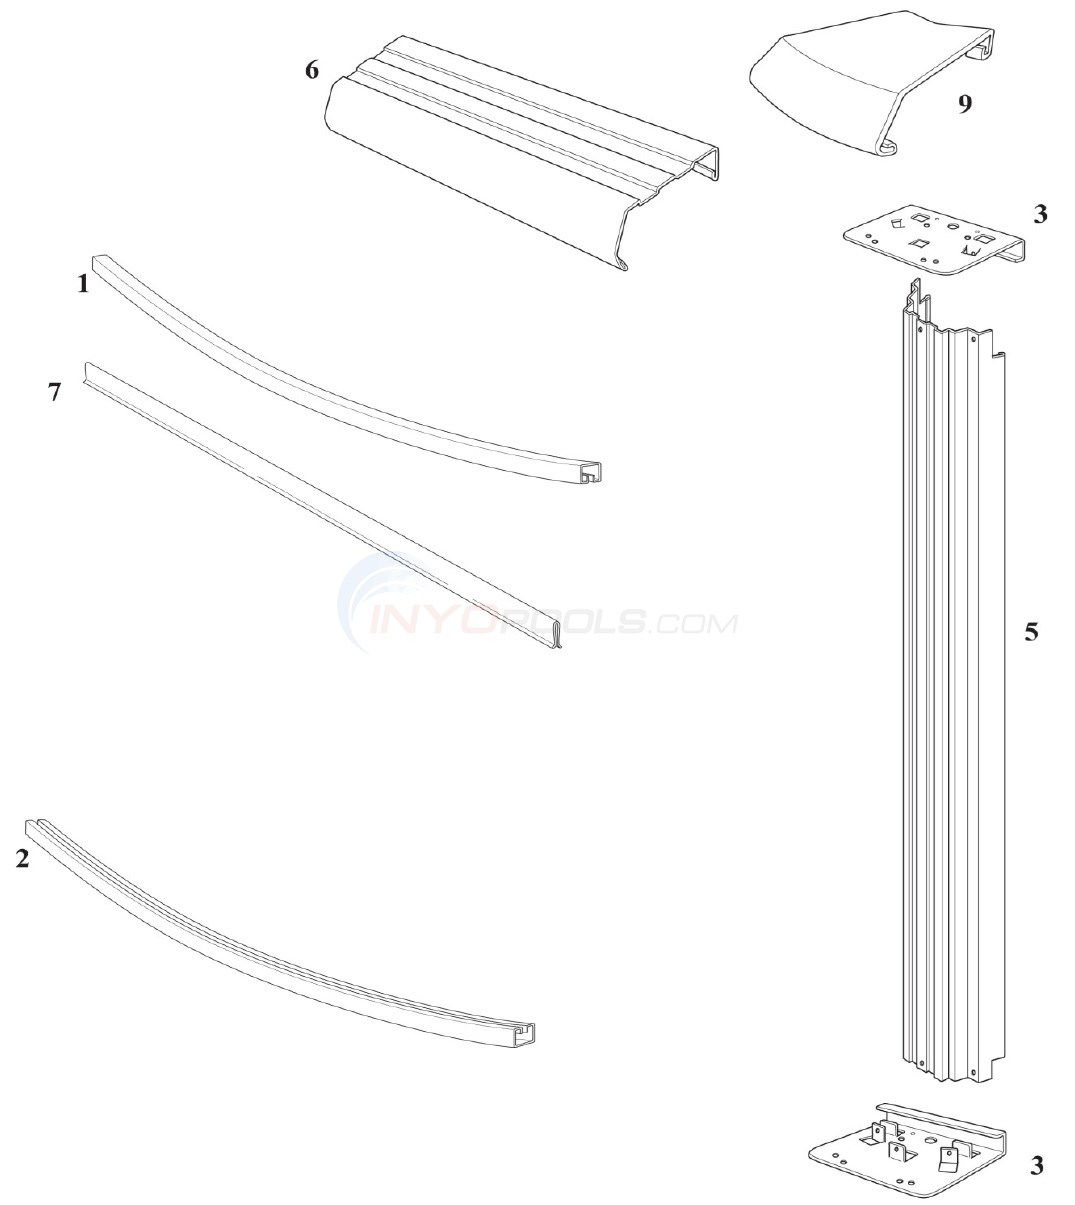 "Reprieve & Concord 27' Round 52"" Wall (Steel Top Rail, Steel Upright) Diagram"